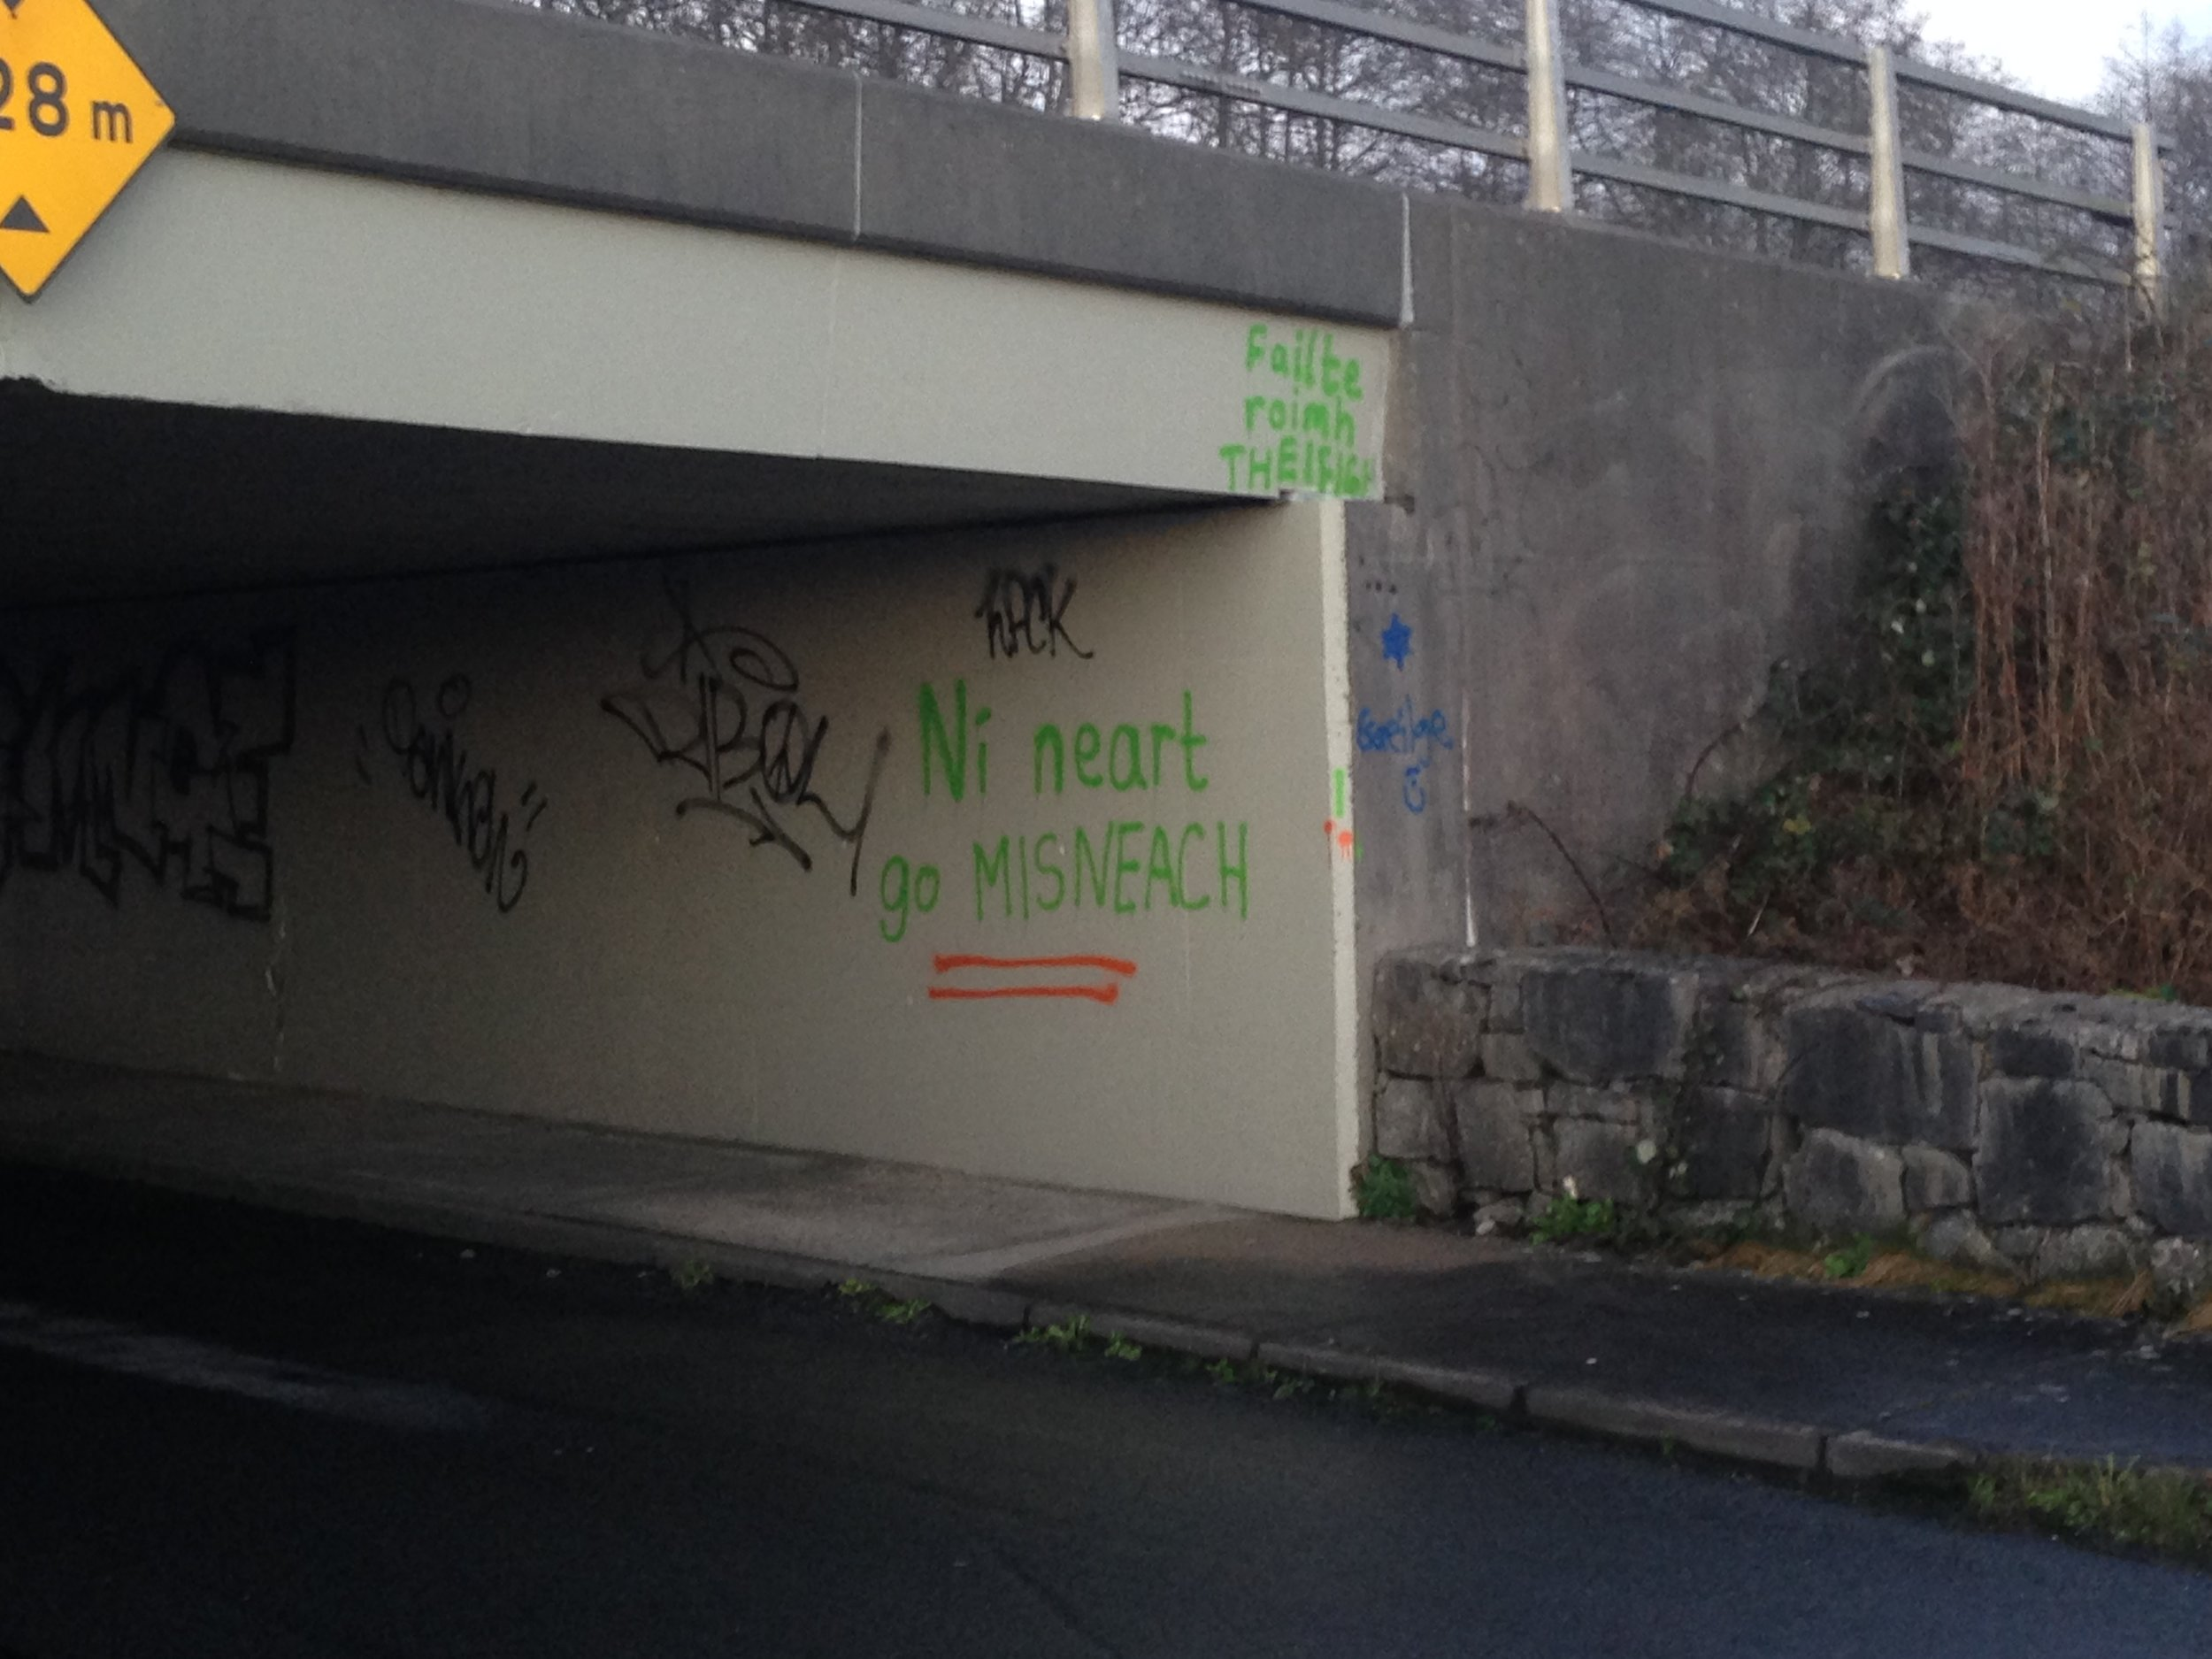 """The left outside wall of the Bridge reads  """"Fáilte roimh theifigh""""  again (meaning """"Welcoming refugees""""), and  """"Ni neart go MISNEACH""""  in green spray paint, which says something about having strength and courage. Lastly, there is a blue six-pointed star with """" Gaeligh """" and a smiley face underneath, which is the Irish term for the Irish language or """"Gaelic""""."""